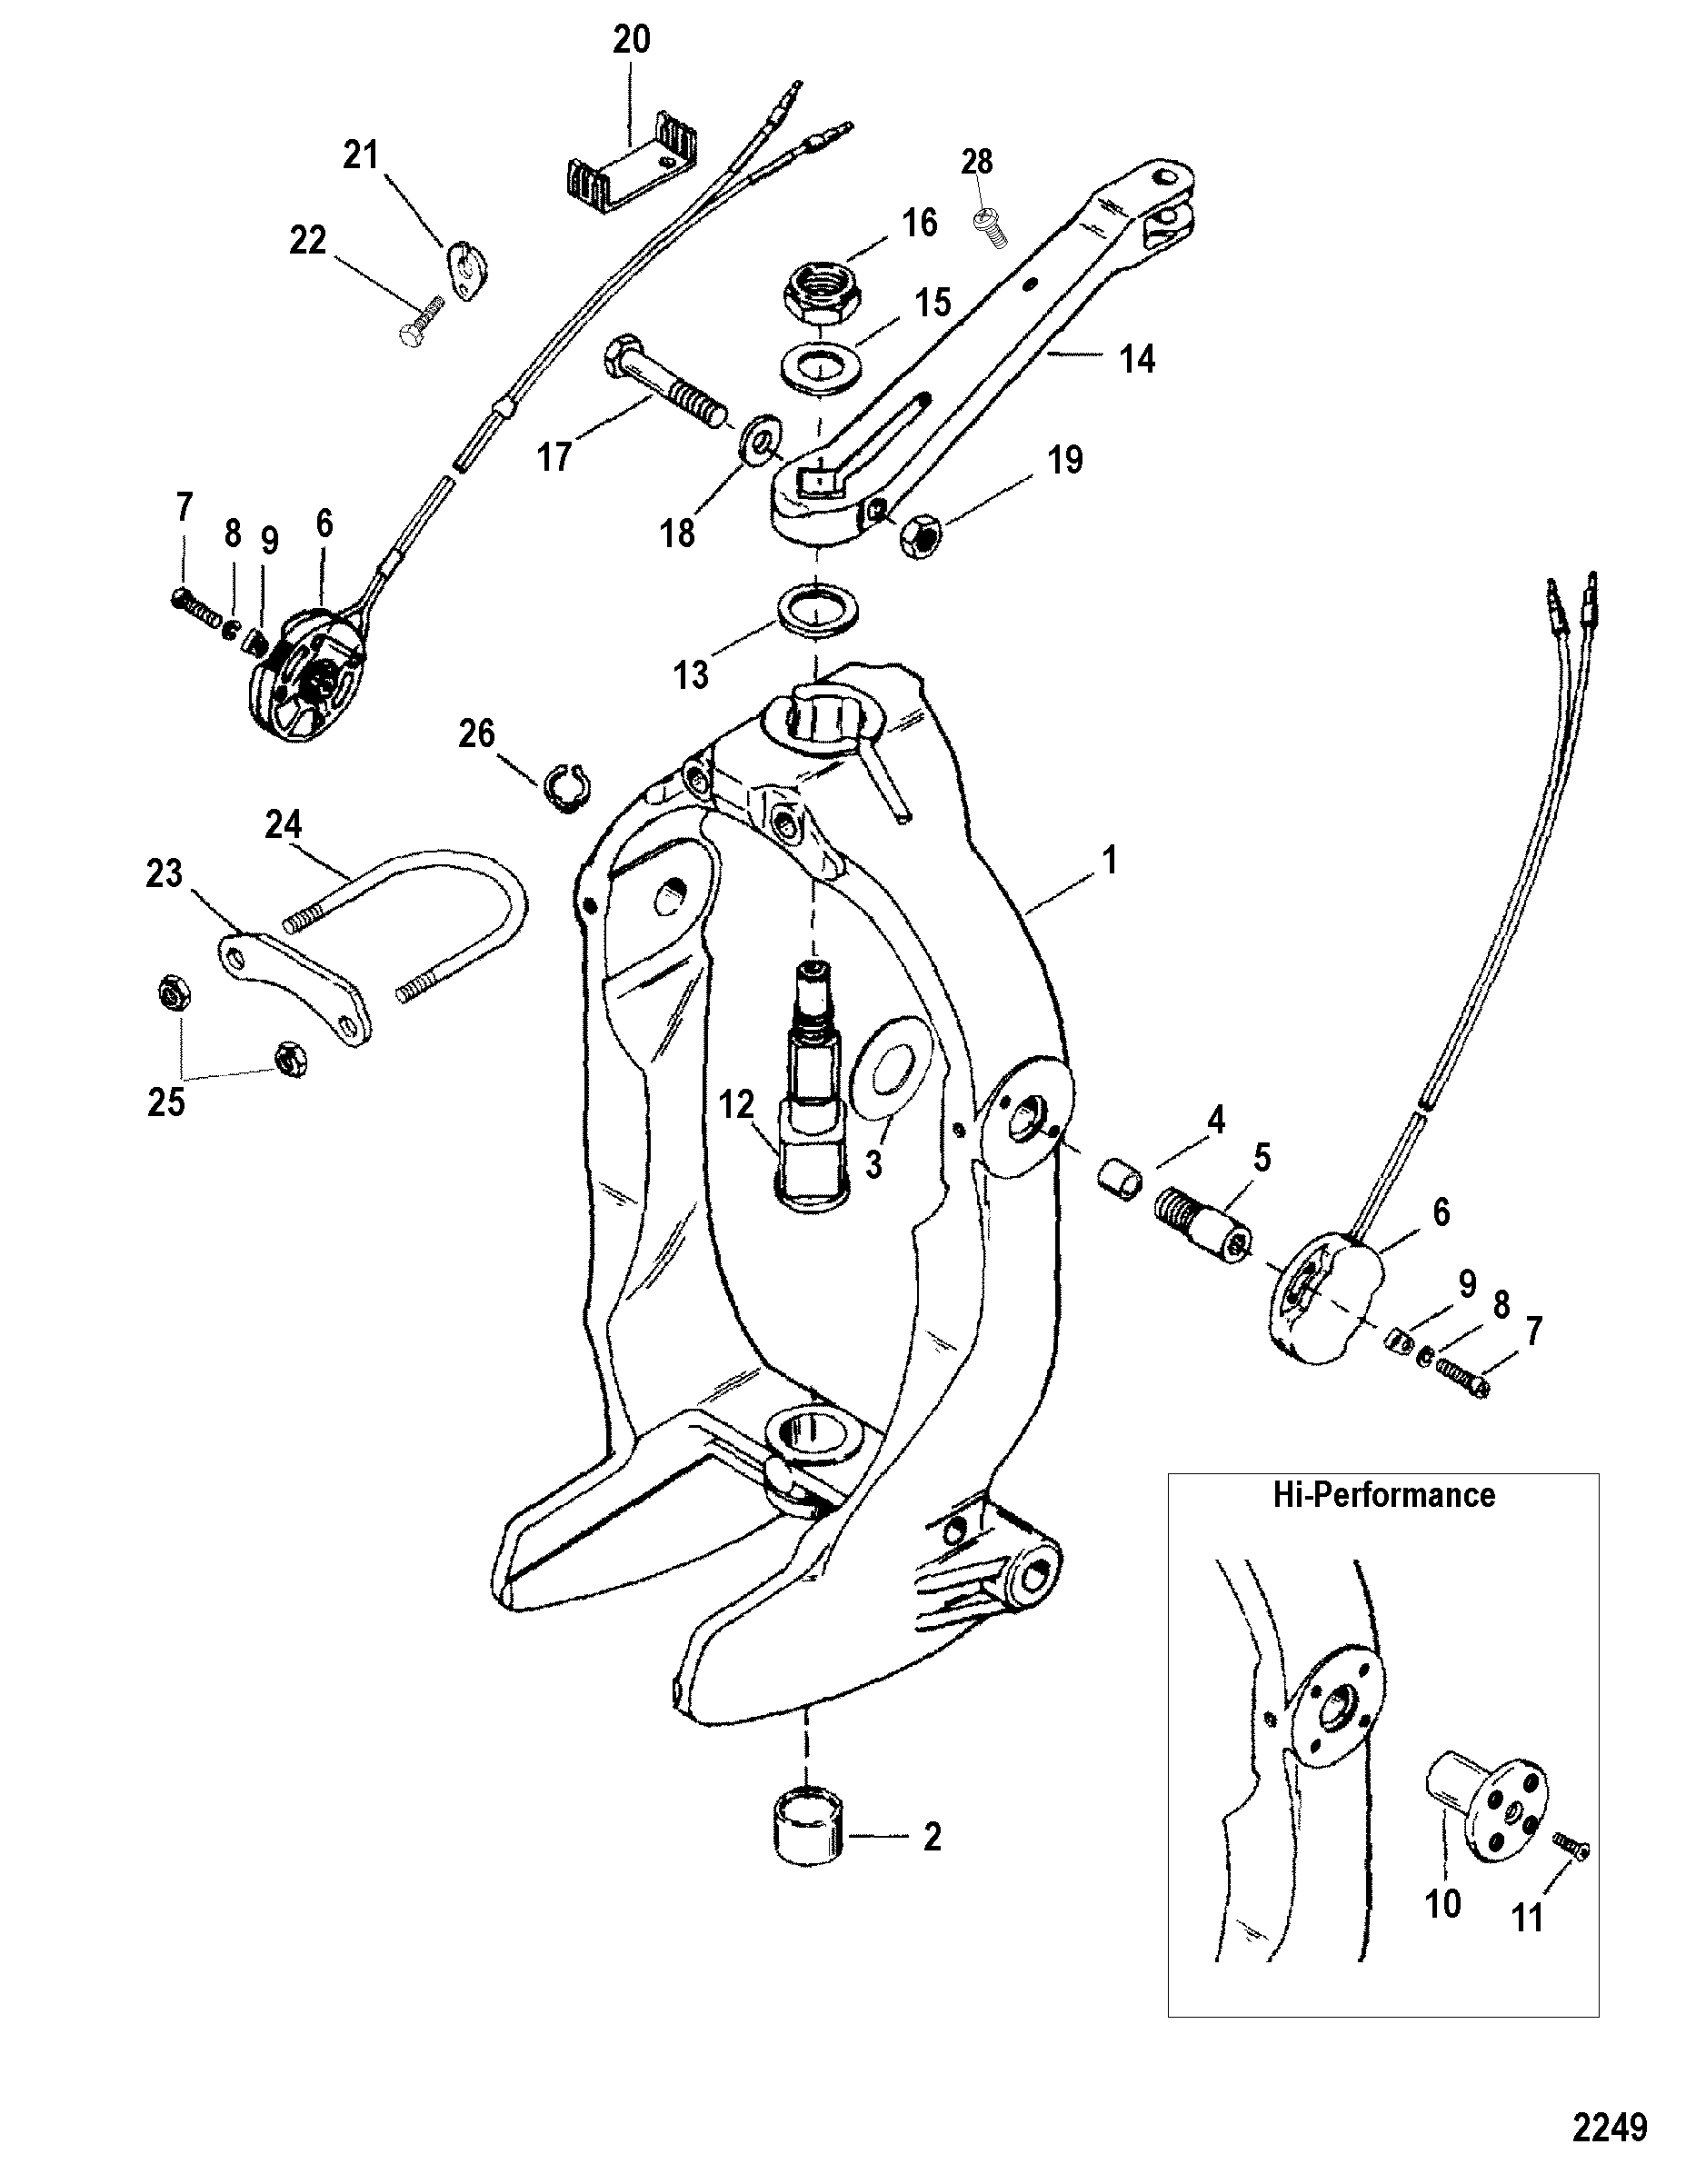 hight resolution of have about 20 of steering wheel slop and it s caused by the 3 8 clevis pin that connects the steering cable end in the top picture to the steering lever